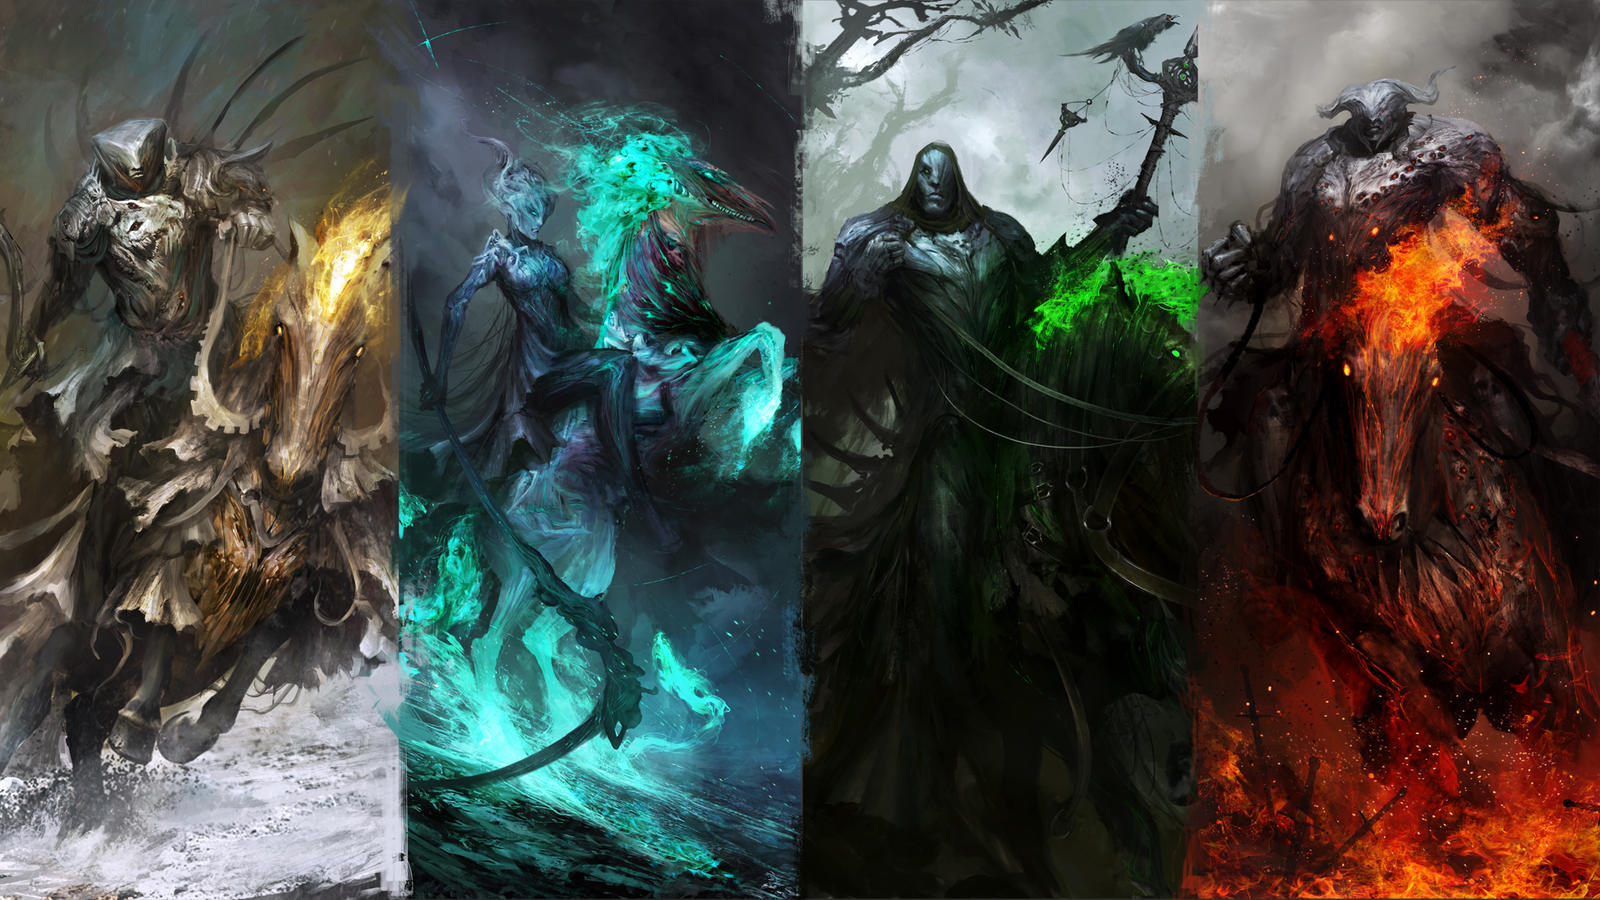 The Four Wallpapers Of The Apocalypse By Thedurrrrian On Deviantart